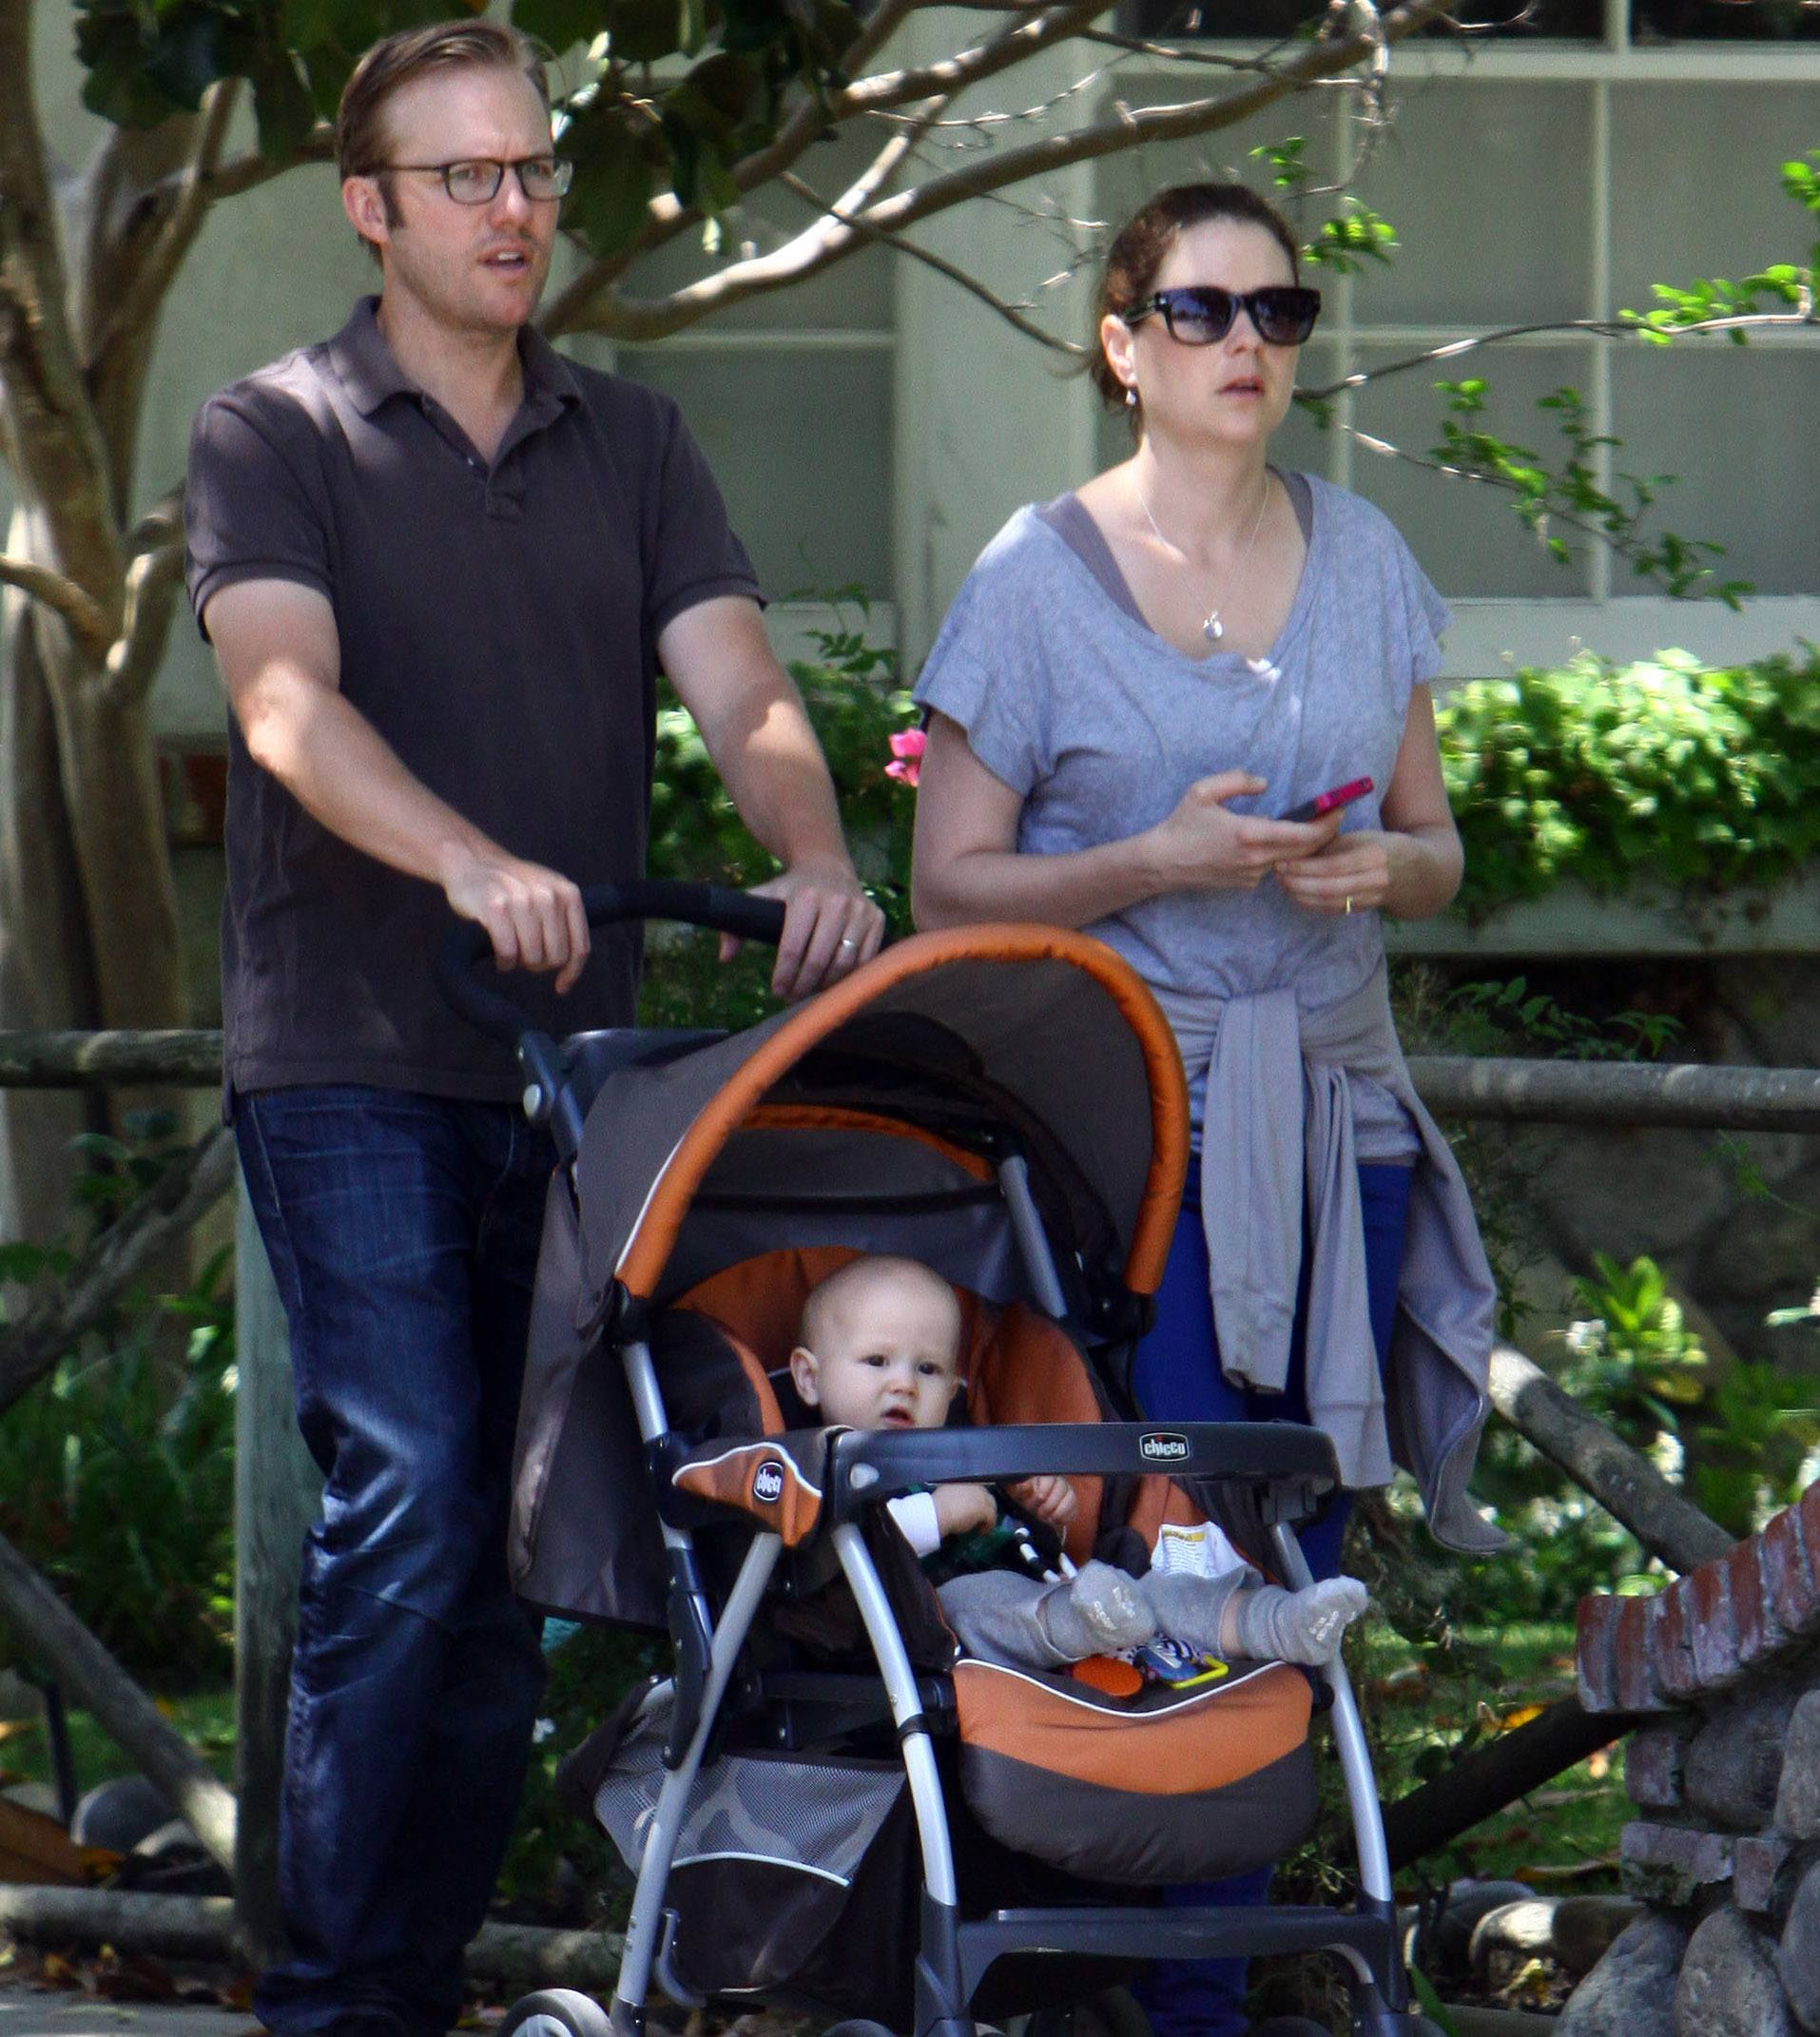 Jenna Fischer walking with husband Lee Kirk and son Weston Lee Kirk in a stroller, 2012